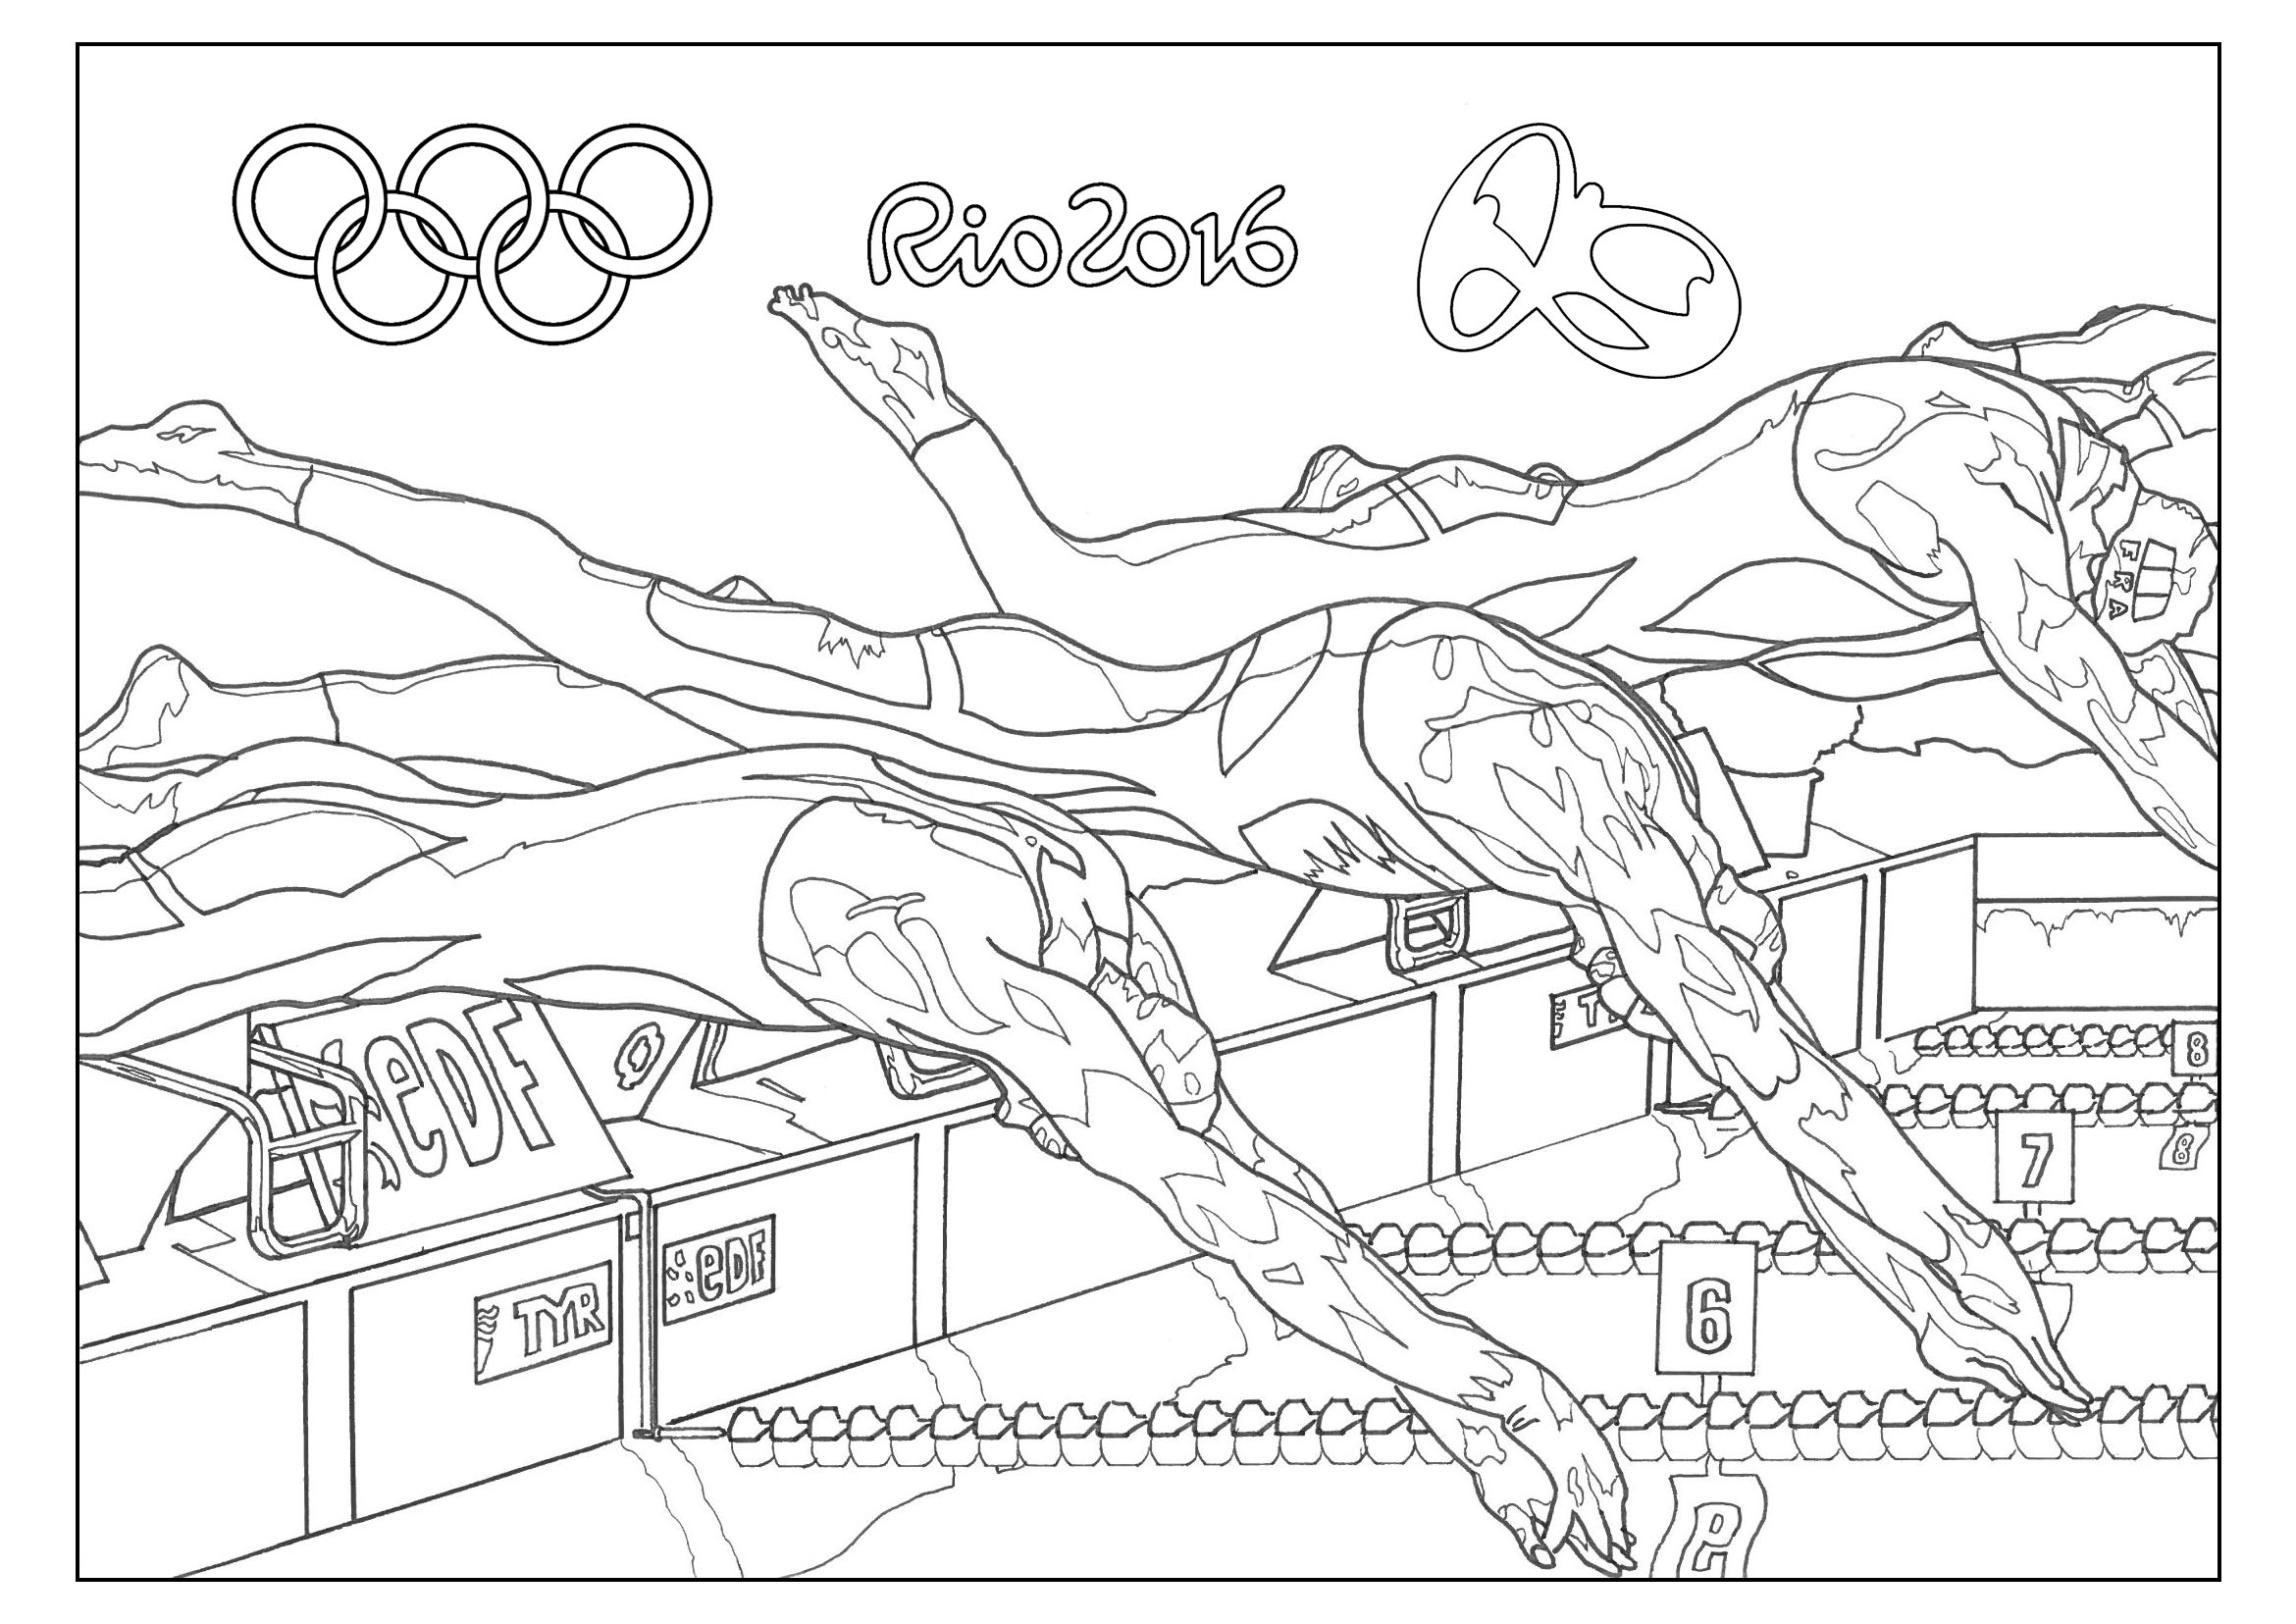 Swim Team Coloring Pages 6107 821—1061 – Fun Time to Print Of Olympic Games Gymnastic Paris 2024 Olympic & Sport Adult to Print